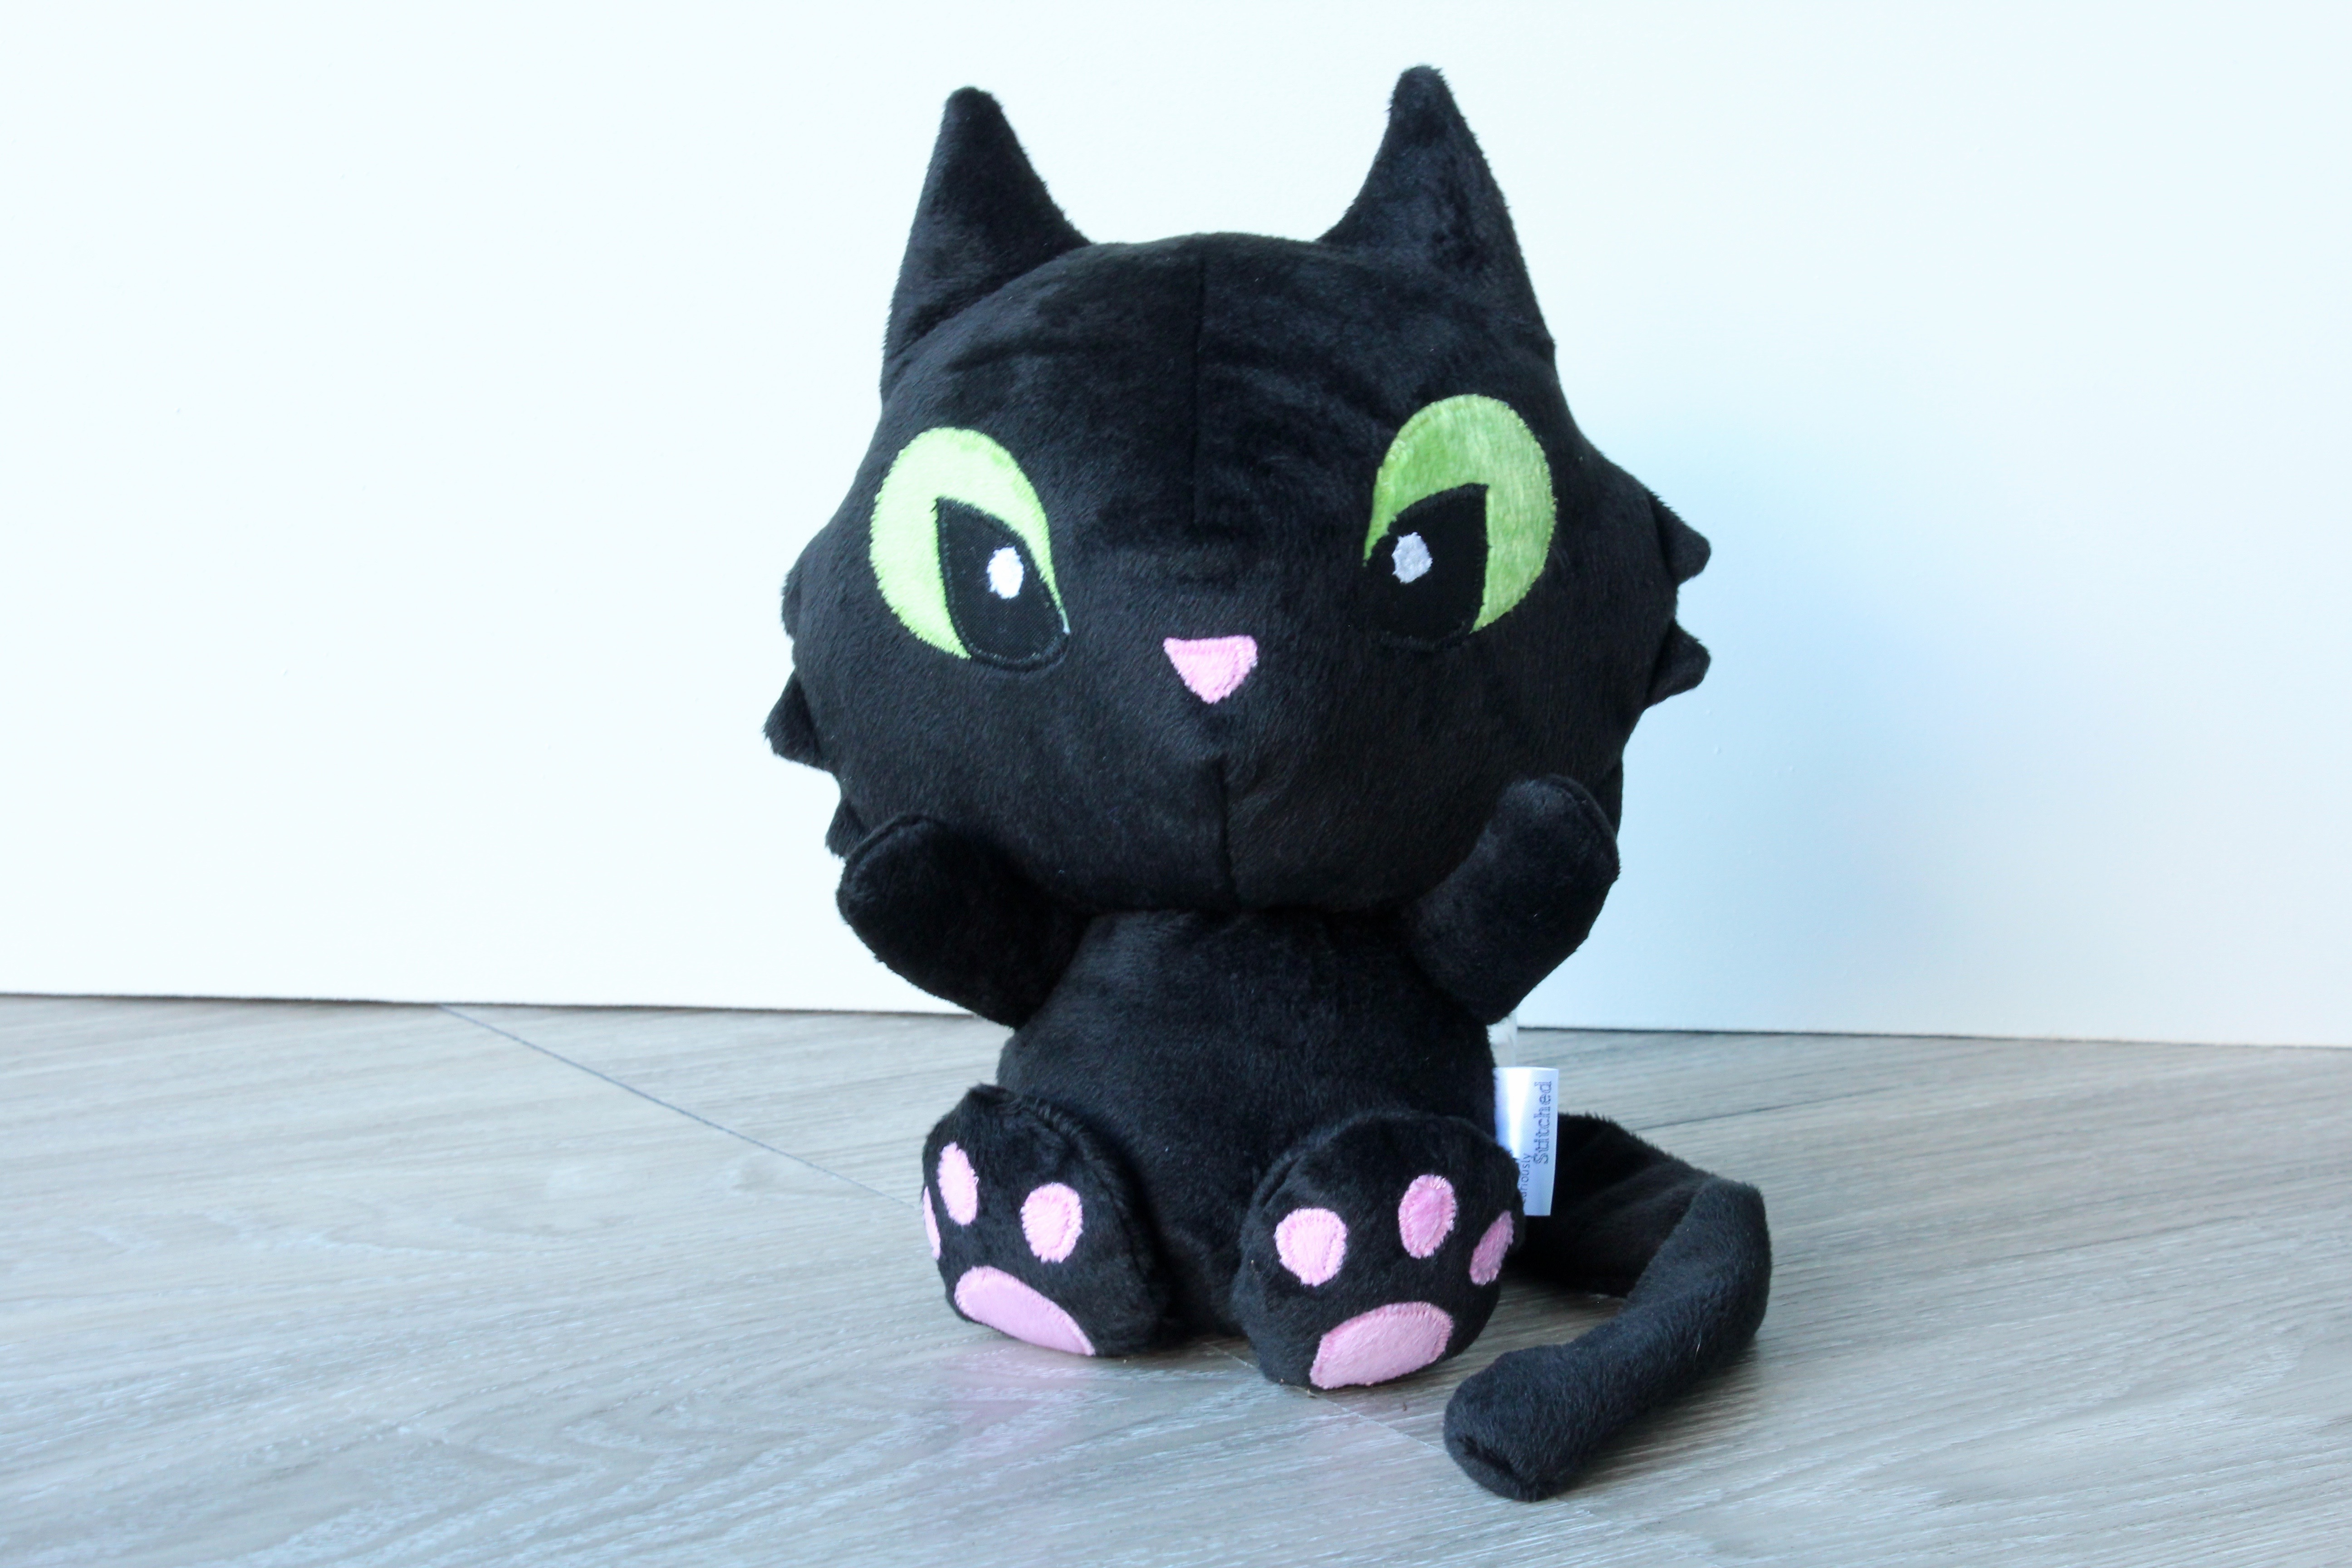 Soft Kitty Toy Stuffed Cat Plushie Soft Toy Cosmic Creepers The